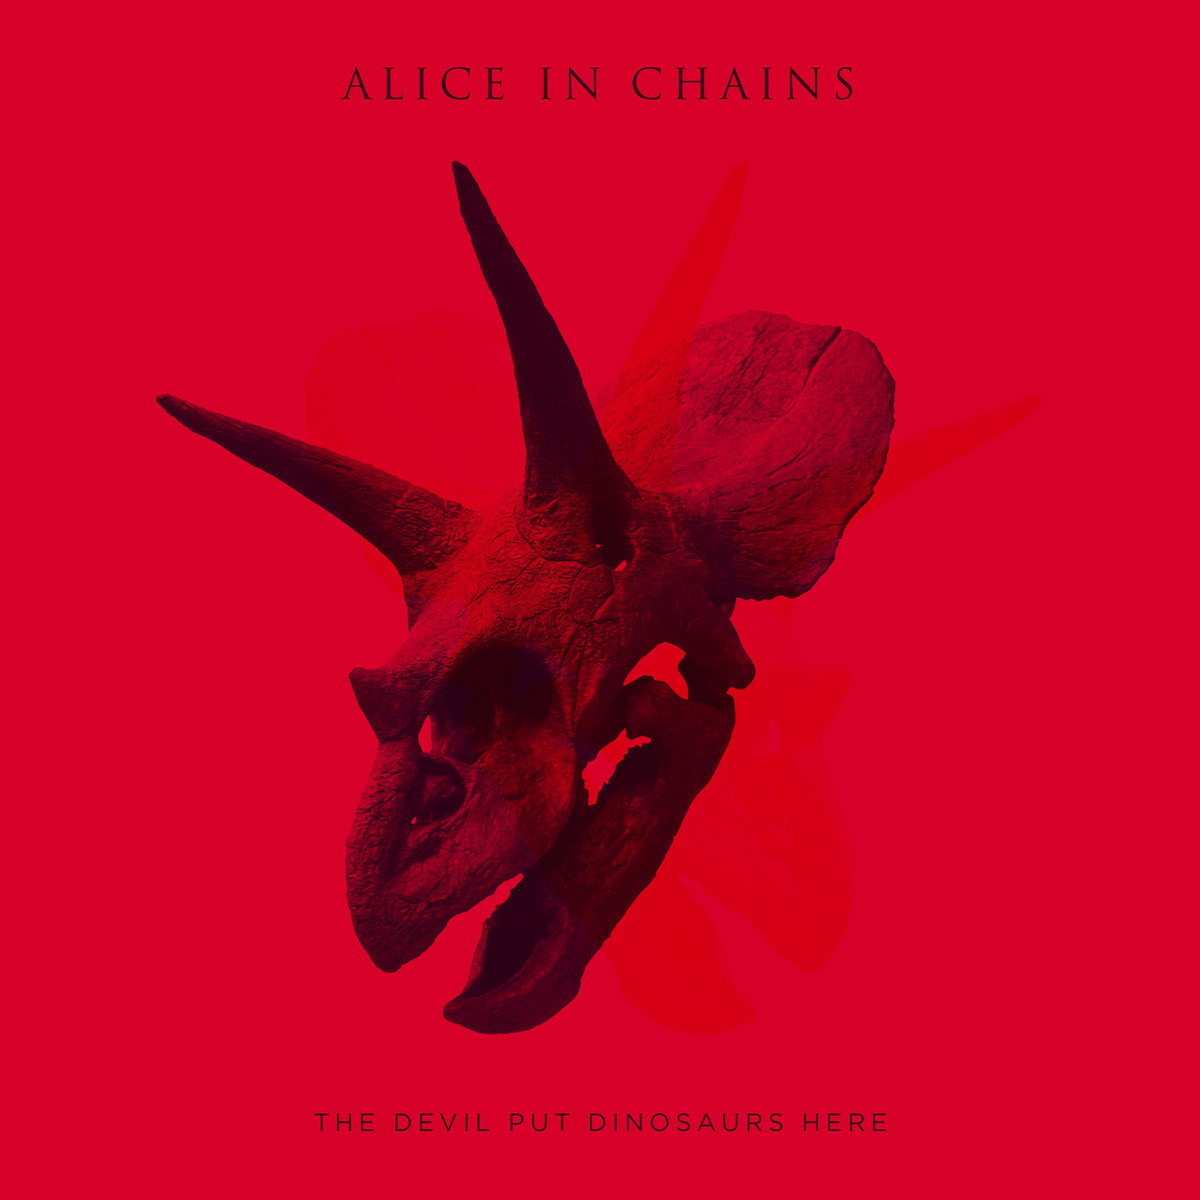 The Devil Put Dinosaurs Here (Alice in Chains)